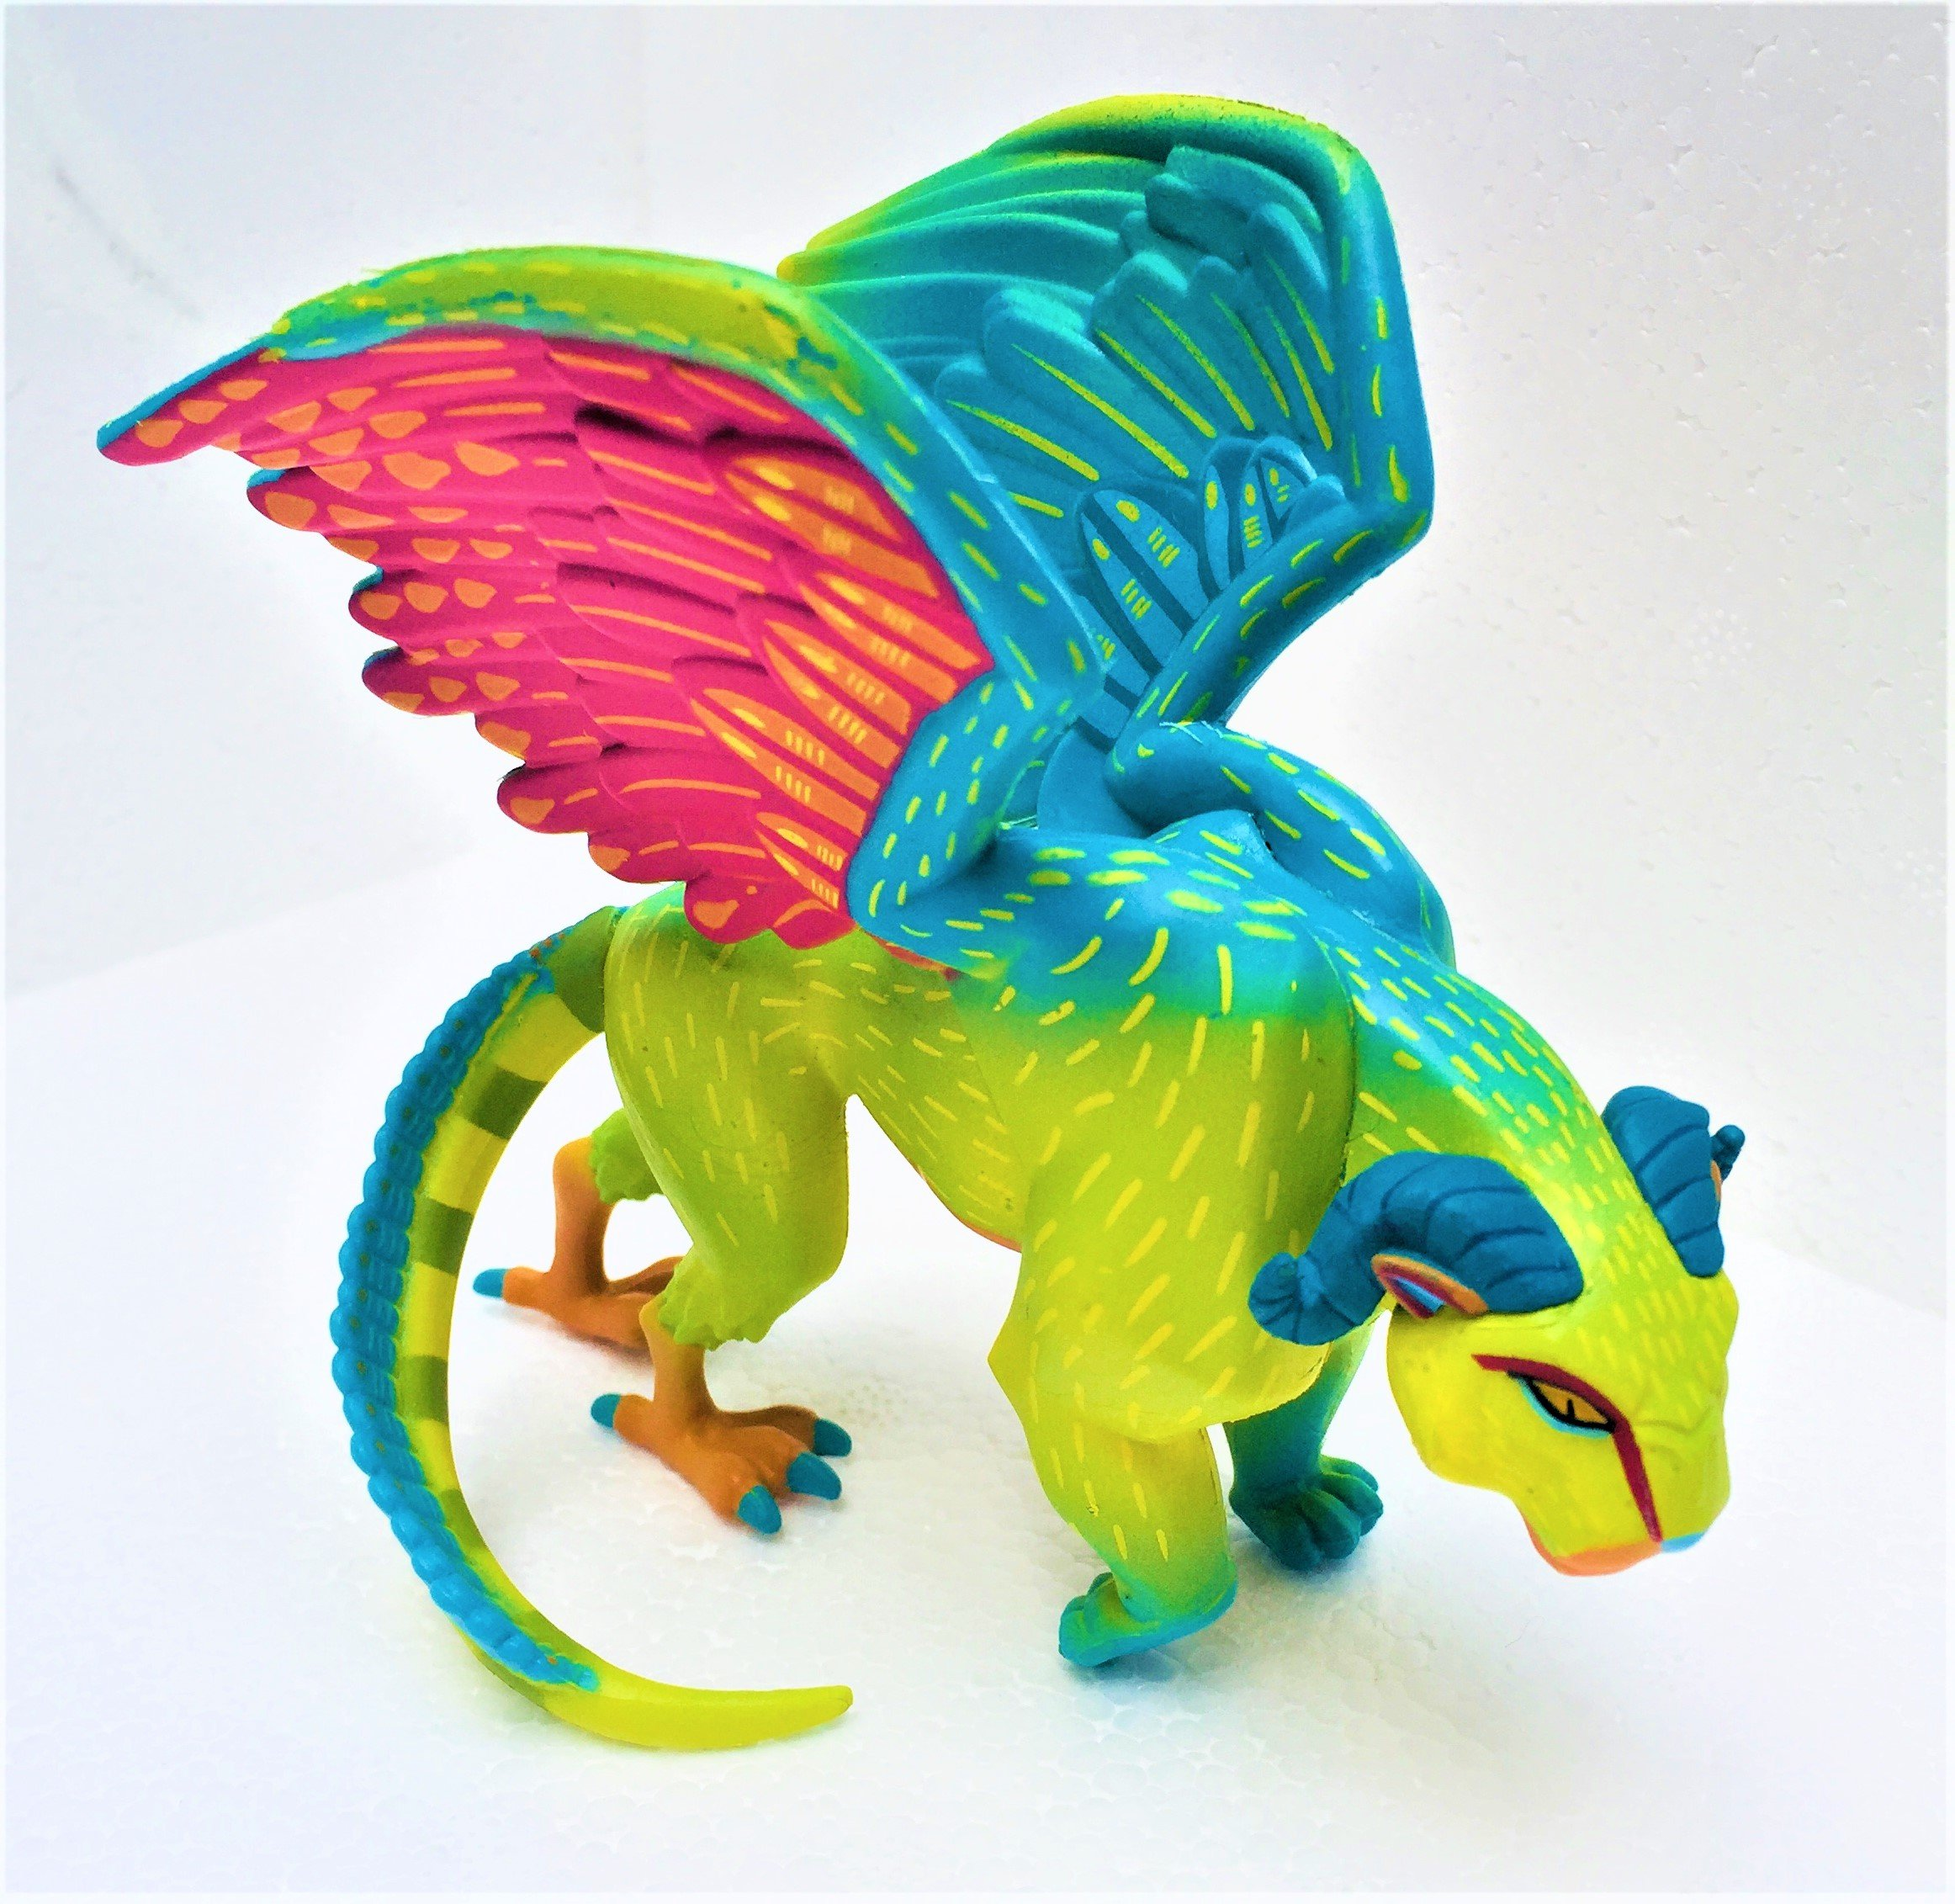 "Disney Coco Pepita Dragon PVC Figure 4"" Figurine Cake Topper Party Favor Toy by holiday figures"